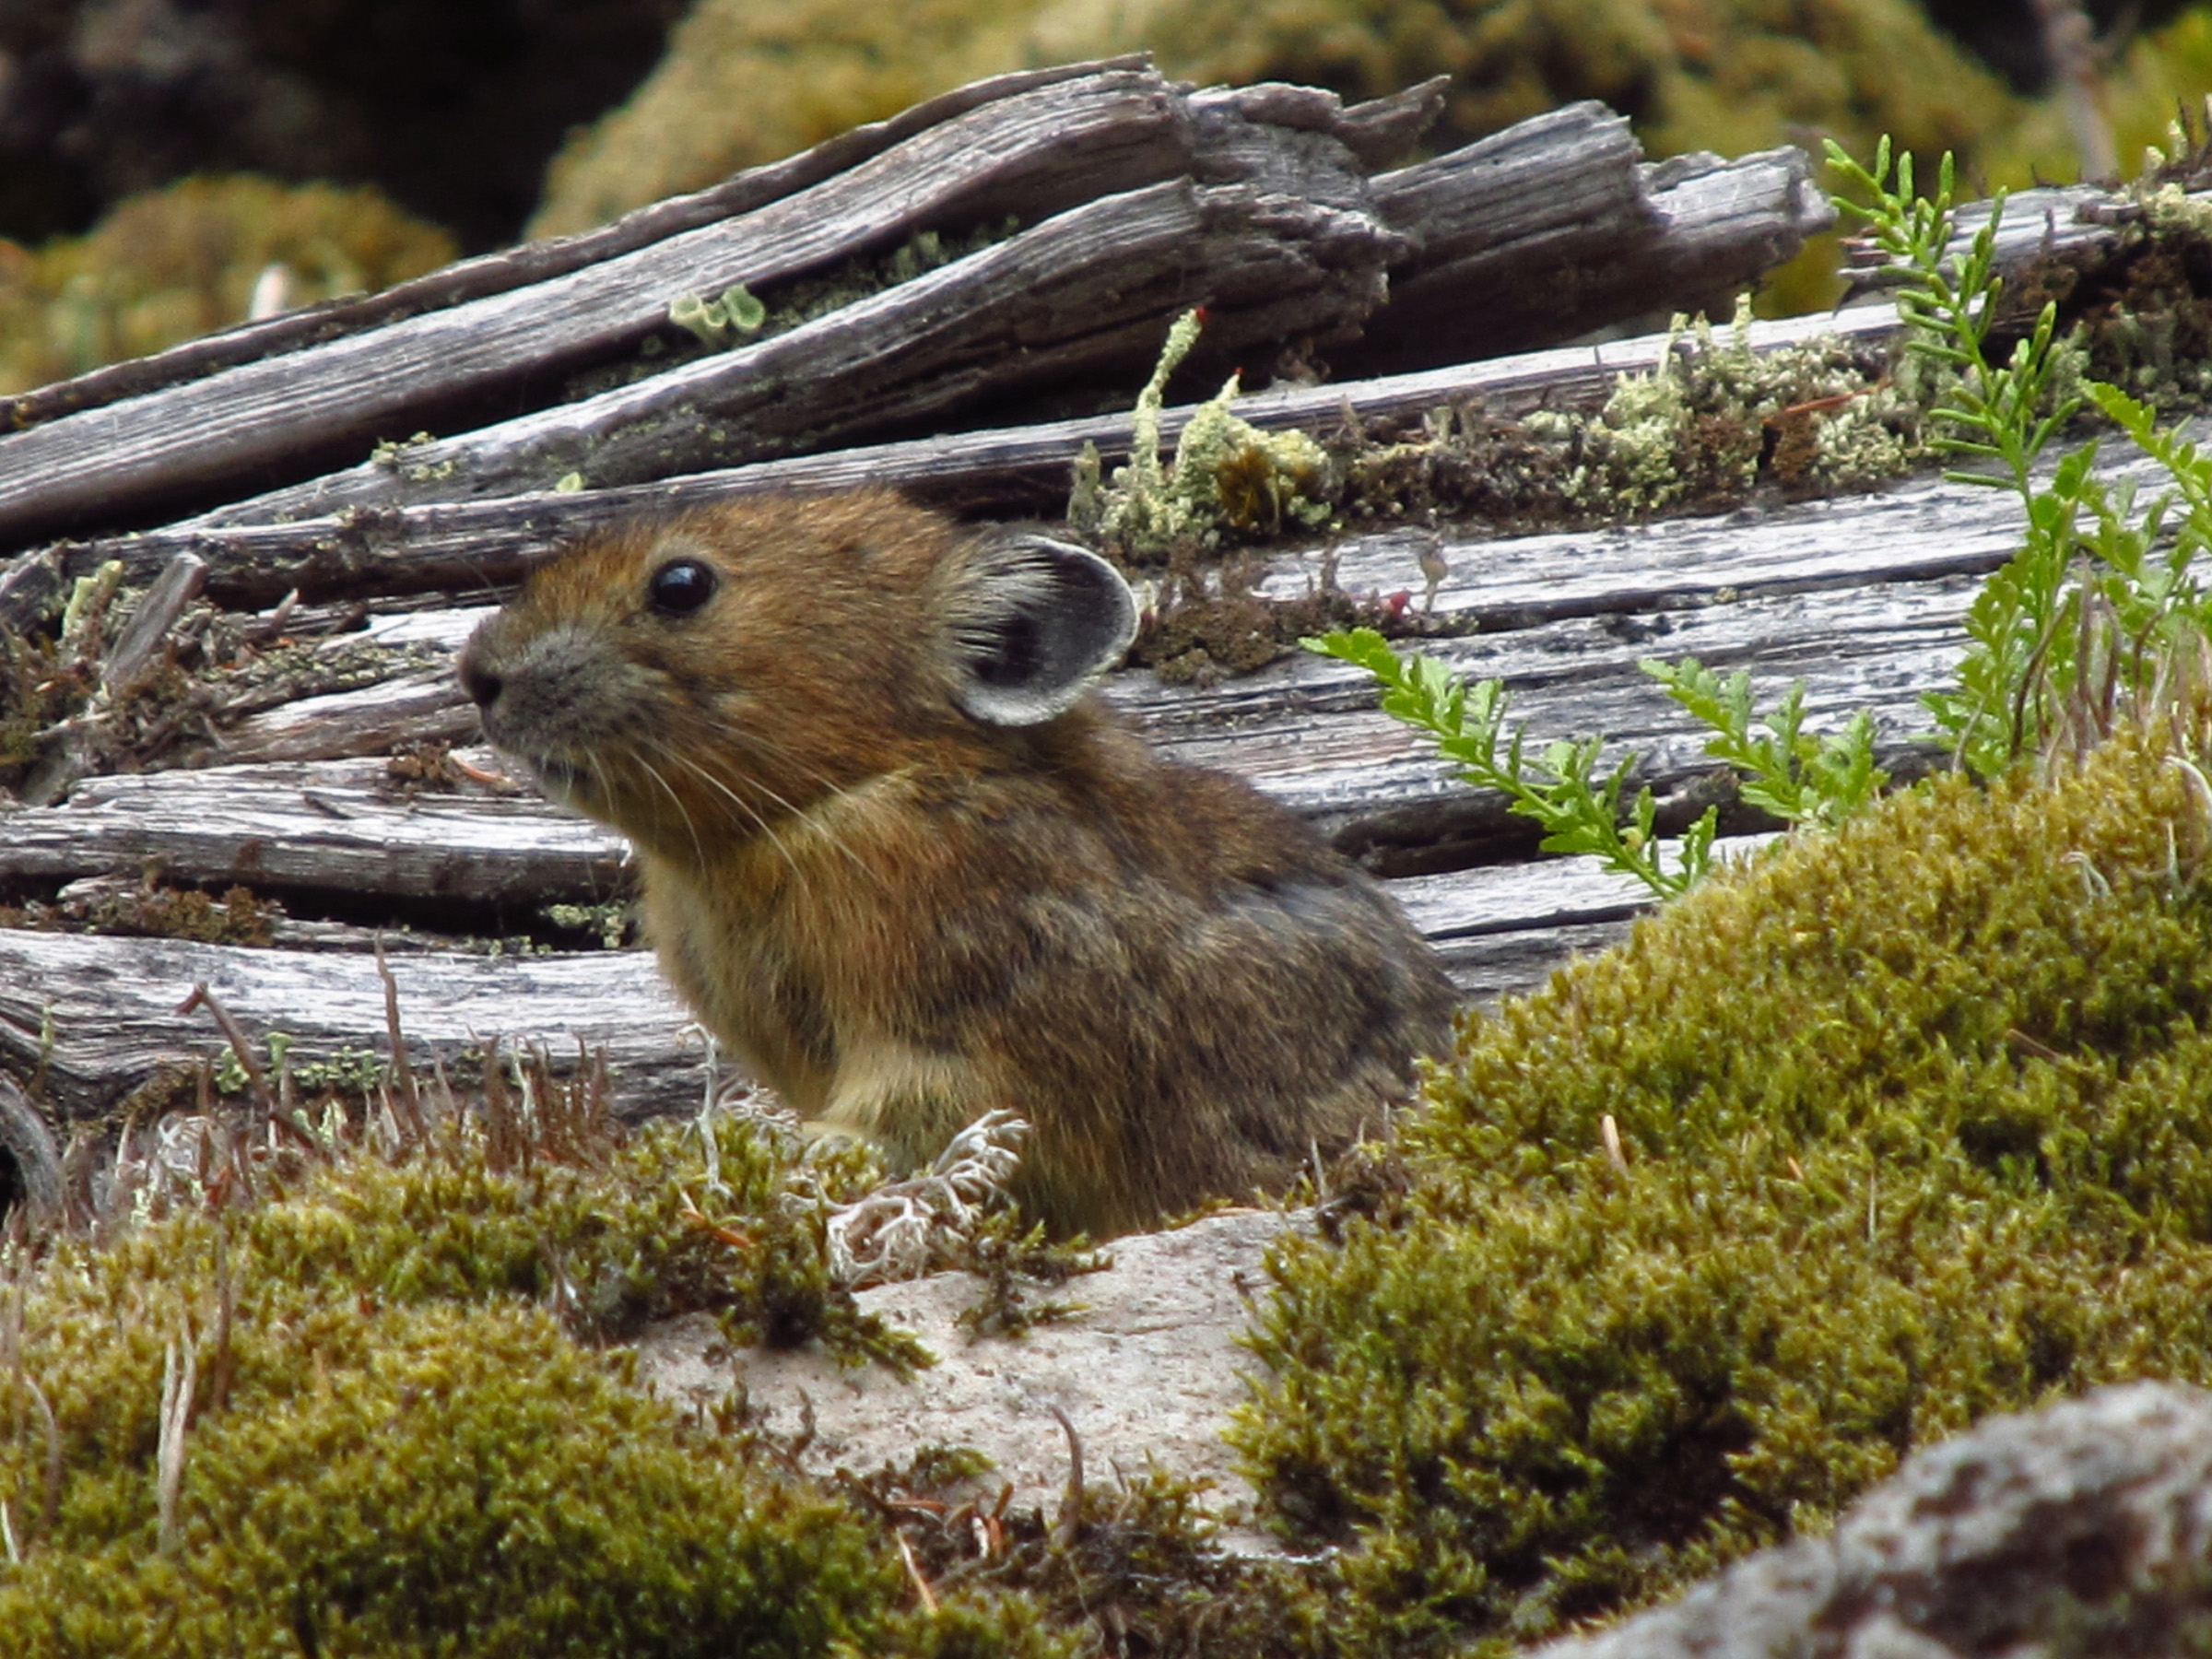 A rabbit relative known as a pika sits among wood, moss and rocks on rockslide or talus slope in Oregon's Columbia River Gorge. A University of Utah study found the pikas -- which normally live at much higher elevations and are threatened by climate change – survive at nearly sea level in Oregon by eating more moss than any other known wild mammal.